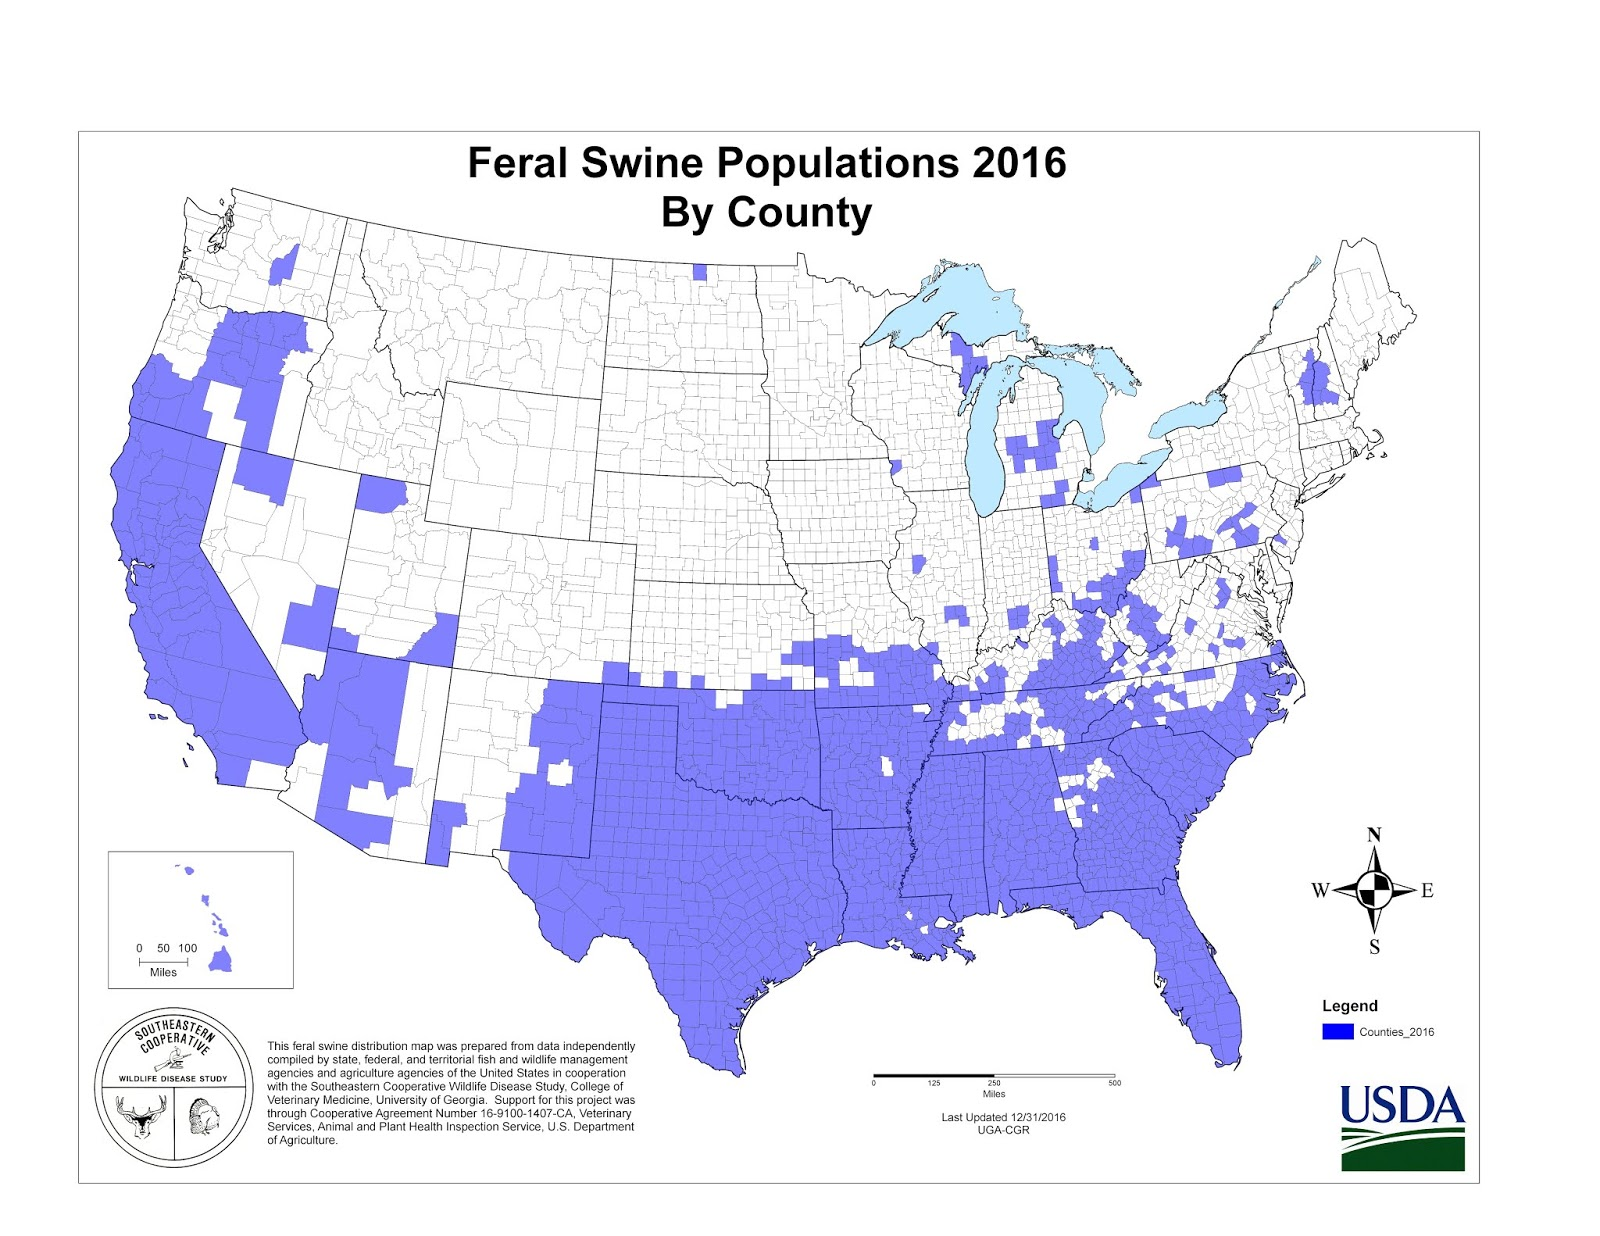 figure 1 nmfss data showing 2016 feral swine populations by county image credit usda aphis